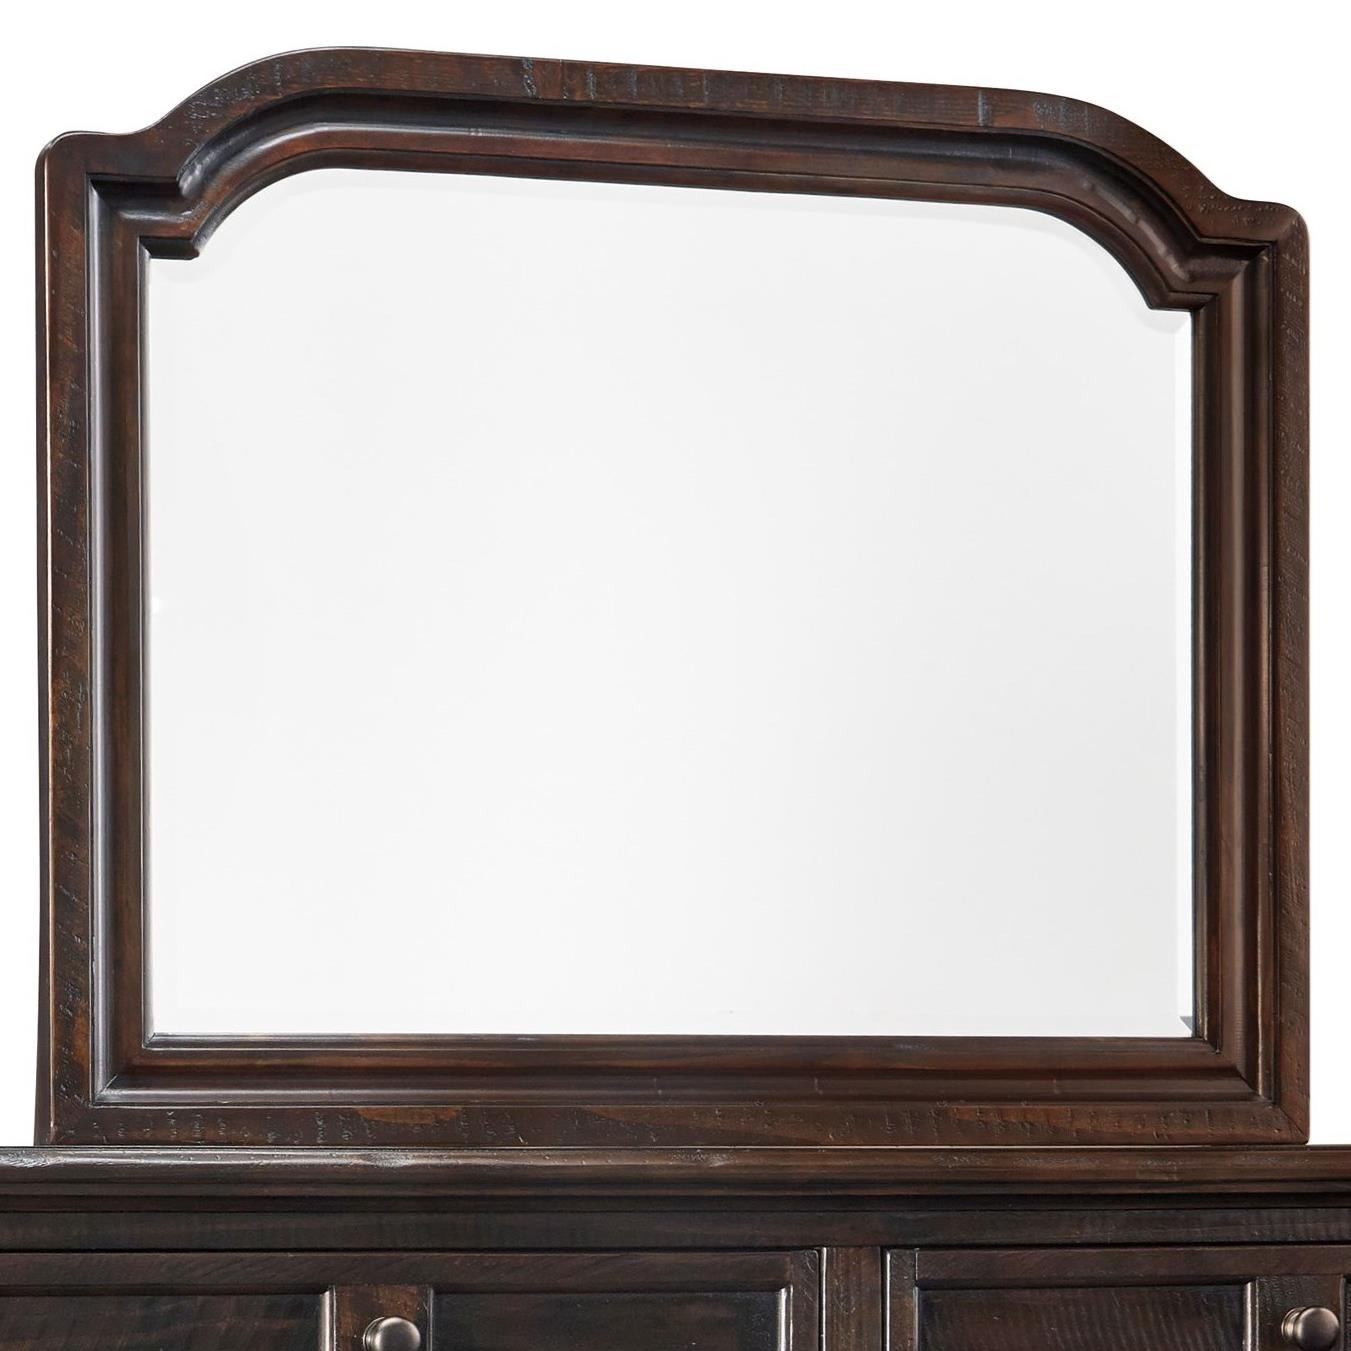 Signature Design by Ashley Gerlane Bedroom Mirror - Item Number: B657-36